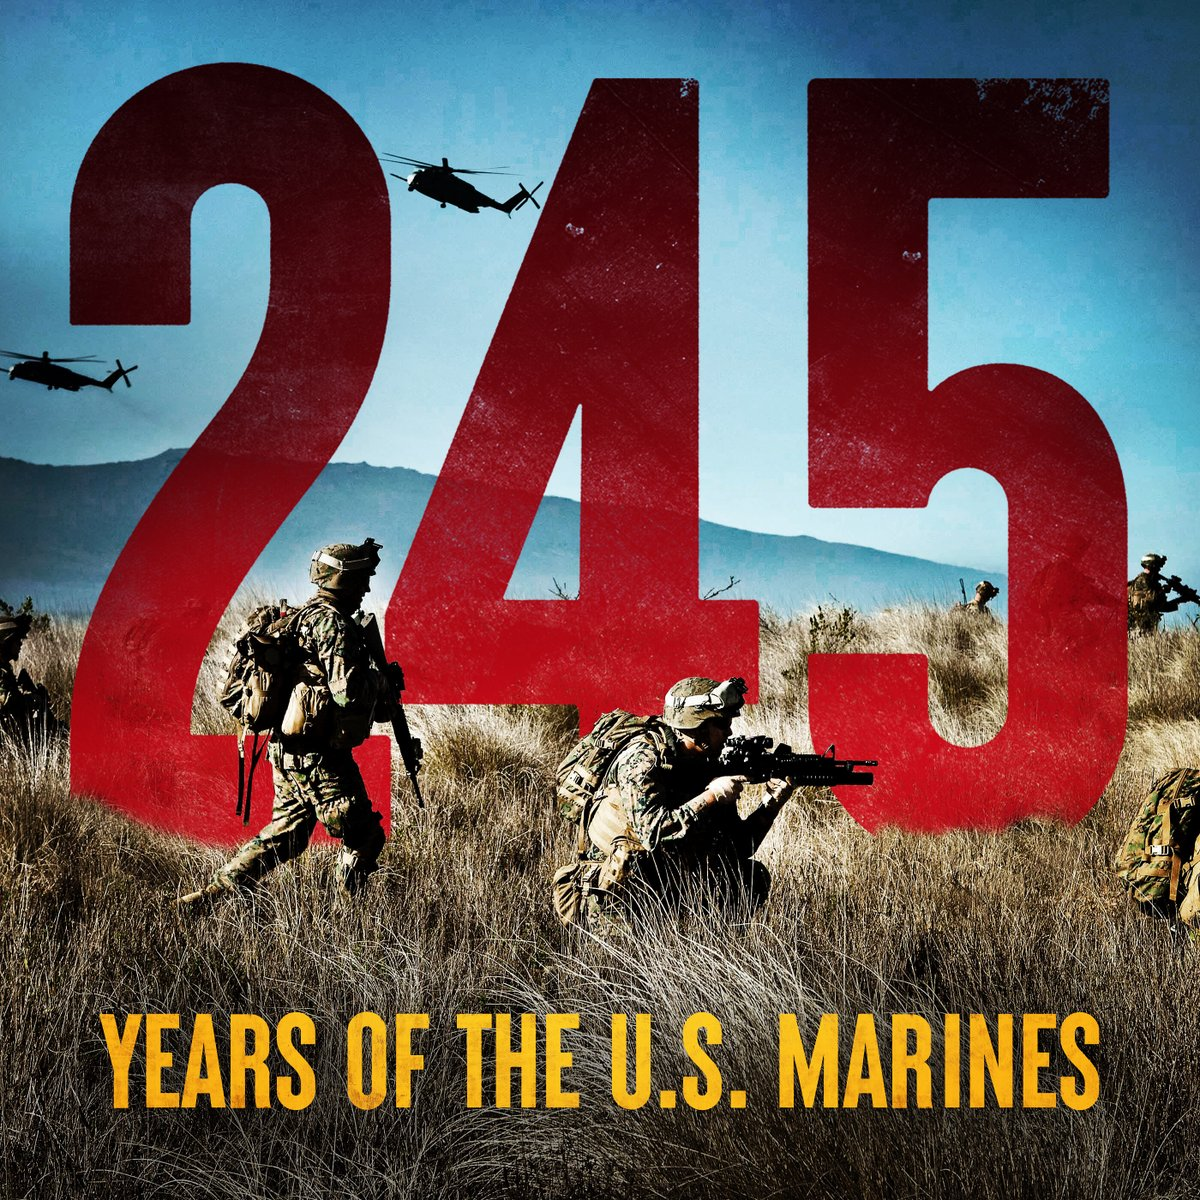 Today, we celebrate 245 years of those trained to improvise, adapt and overcome any obstacle in whatever situation they are needed. Happy Birthday, U.S. Marines!